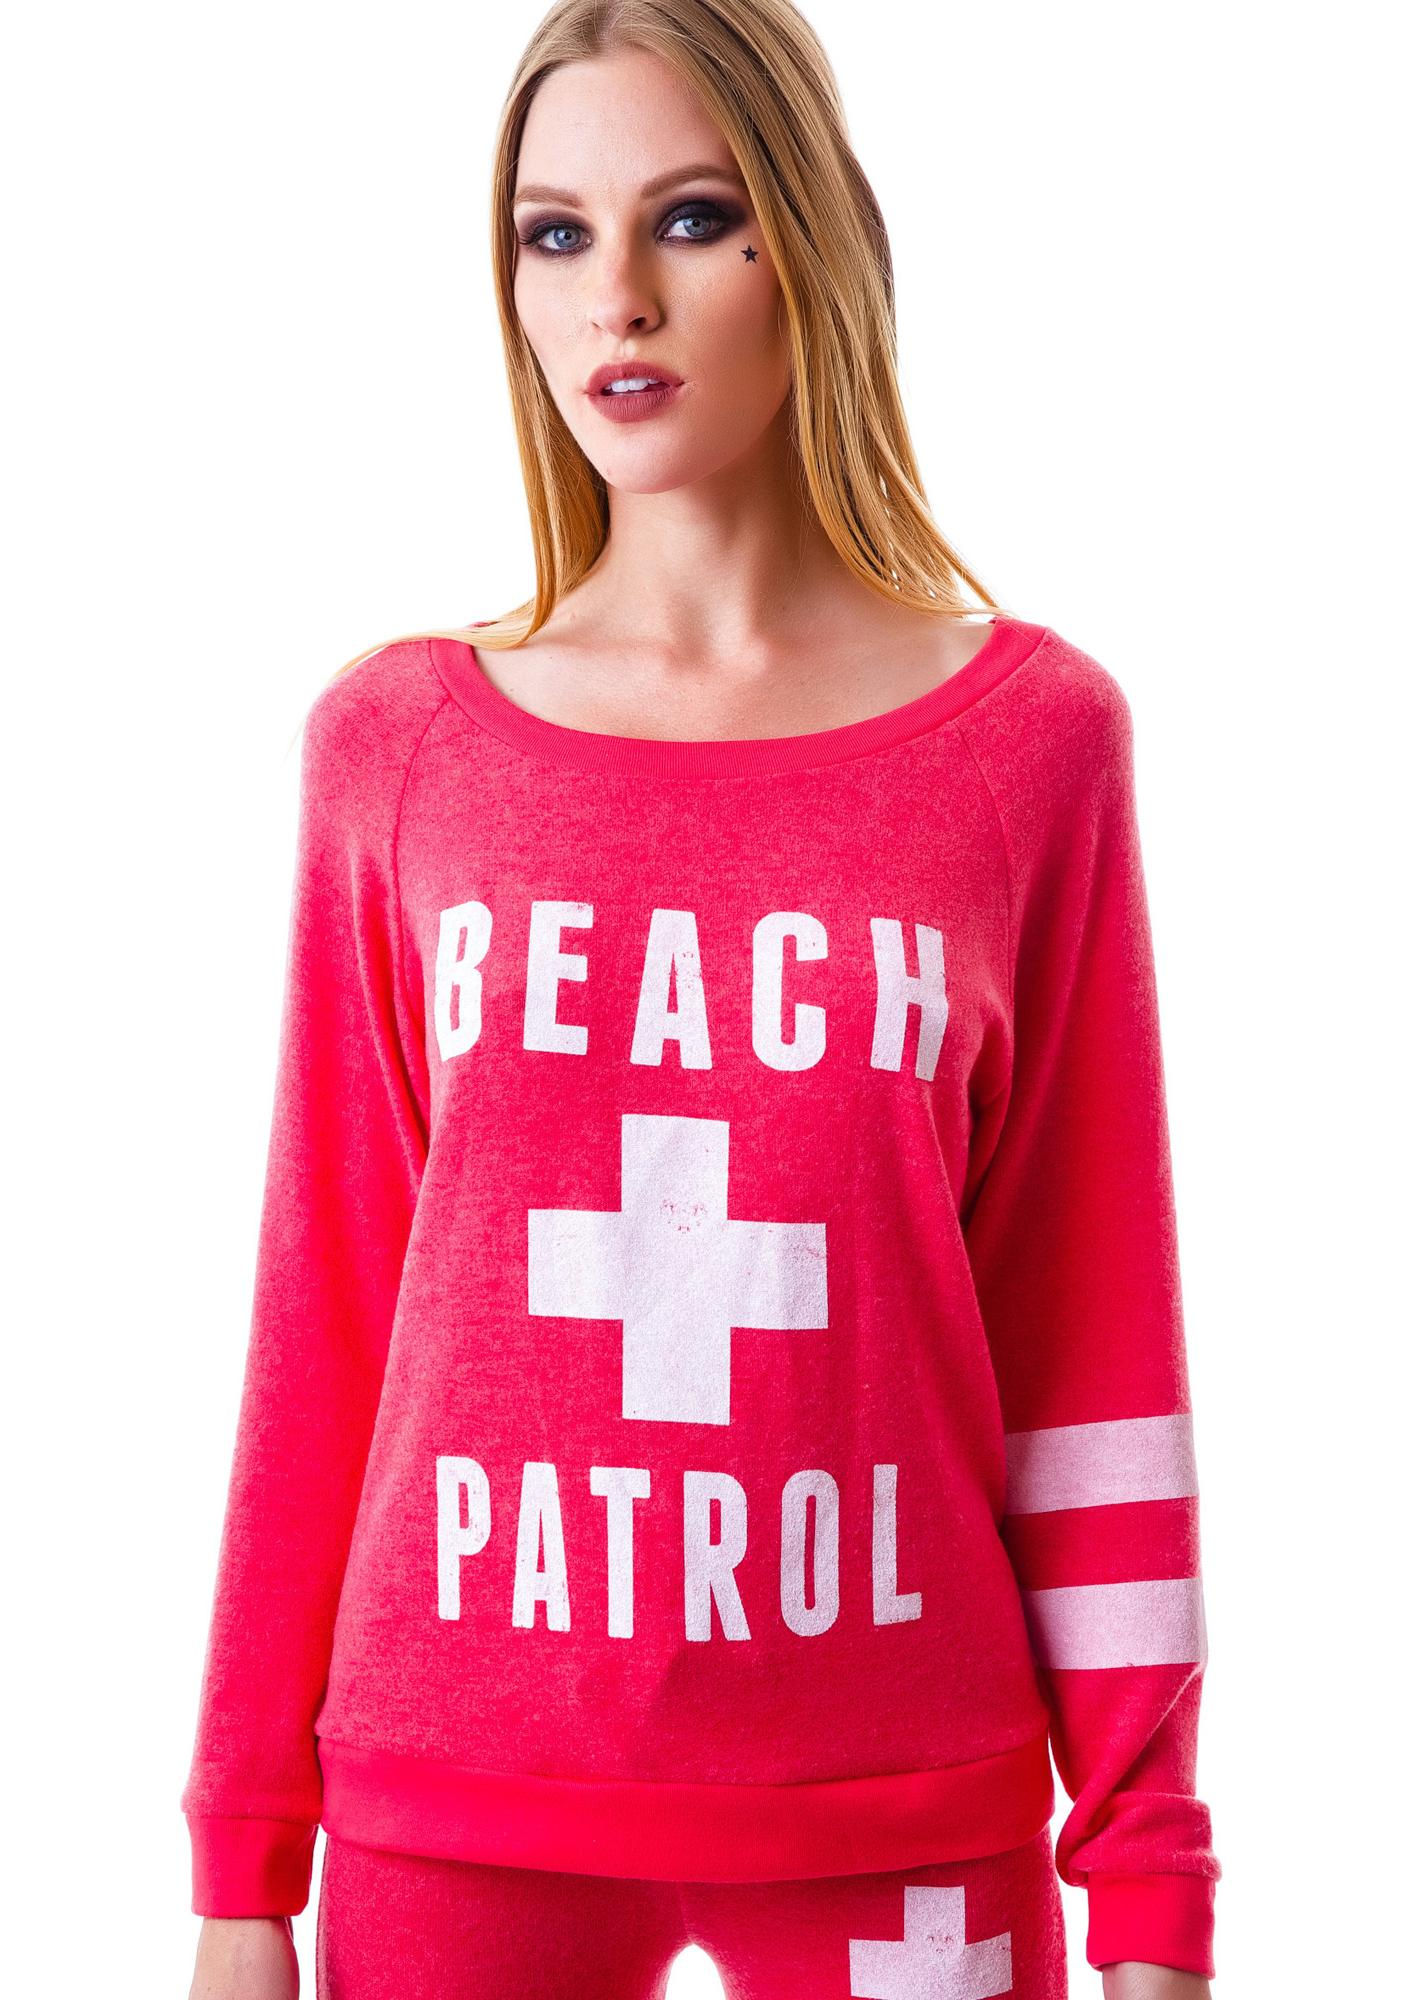 Beach Patrol Long Sleeve Top